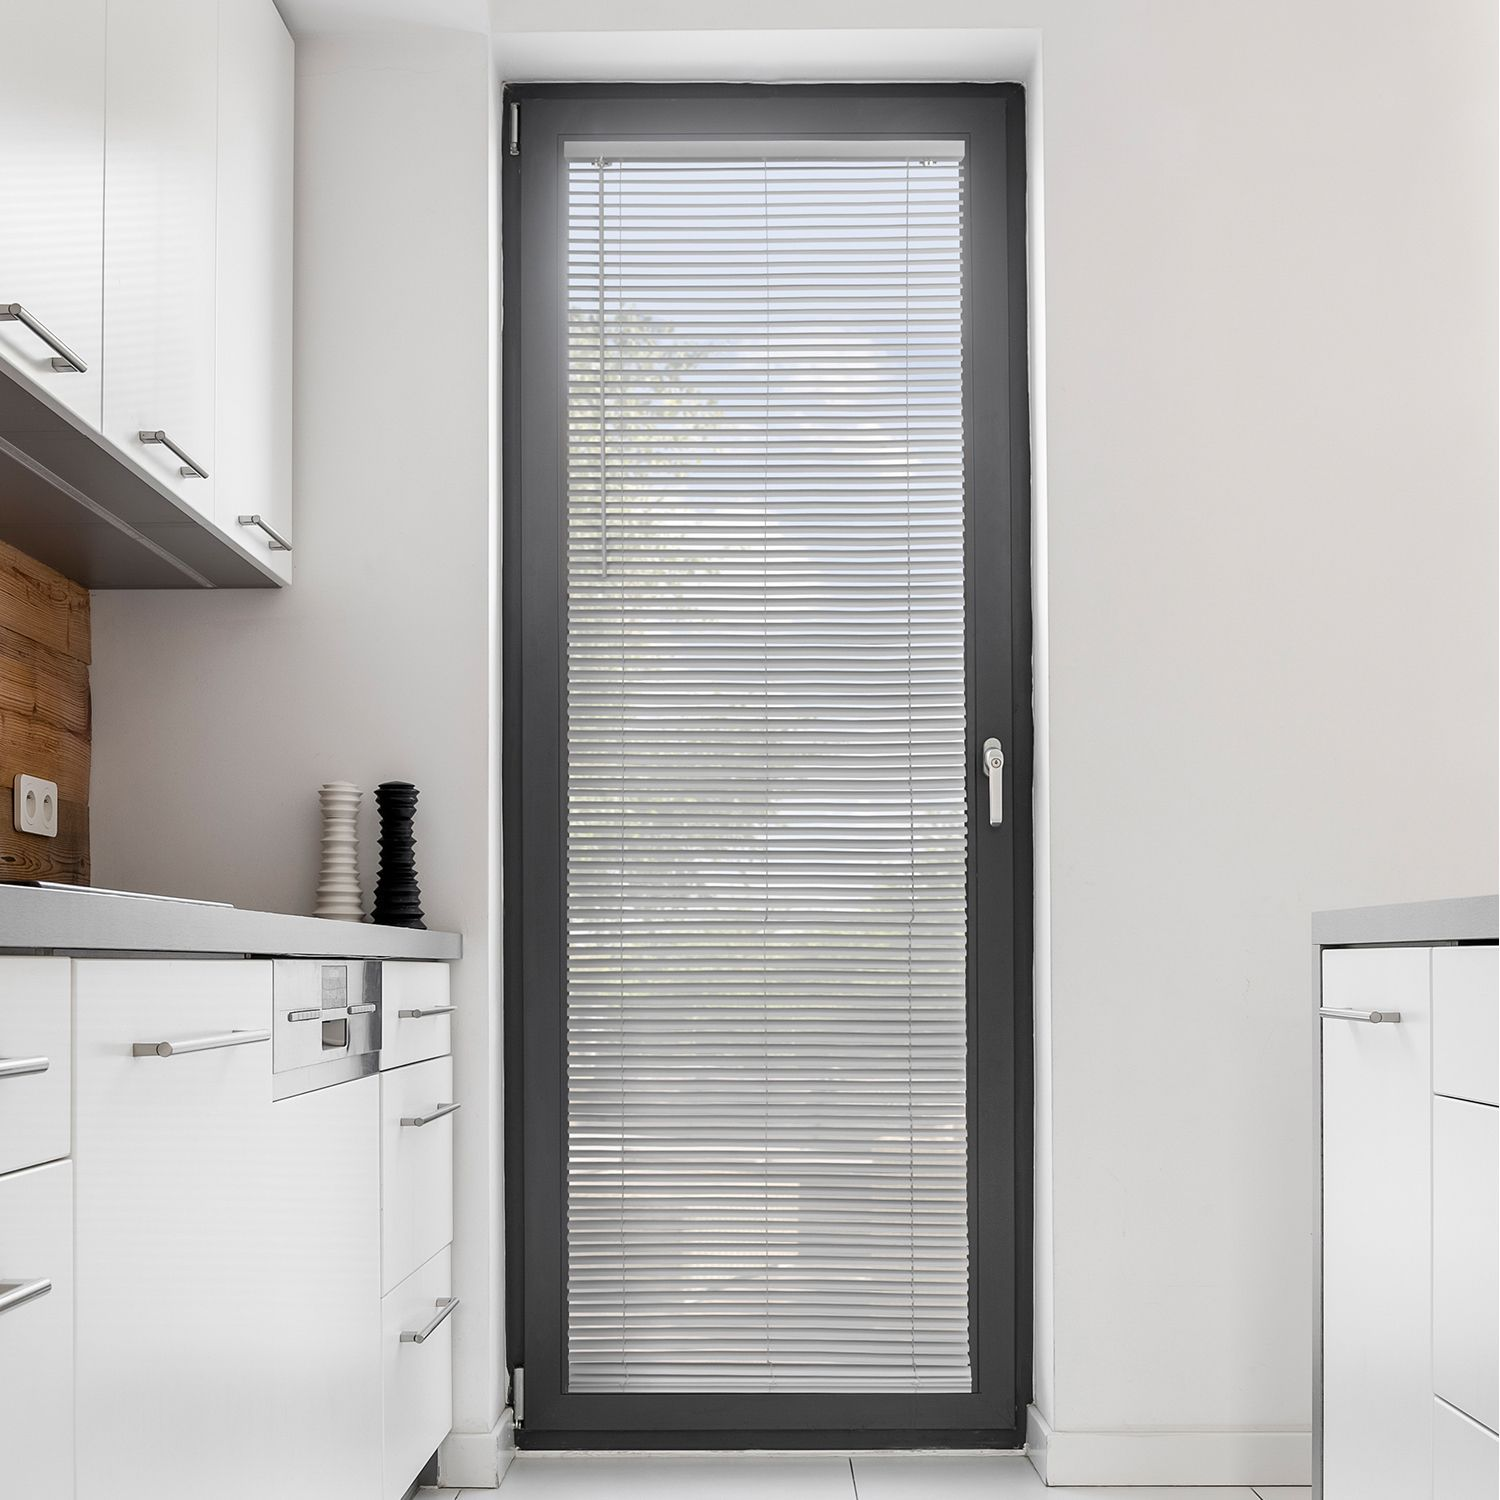 Chicologys cordless vinyl blinds make any home a modern